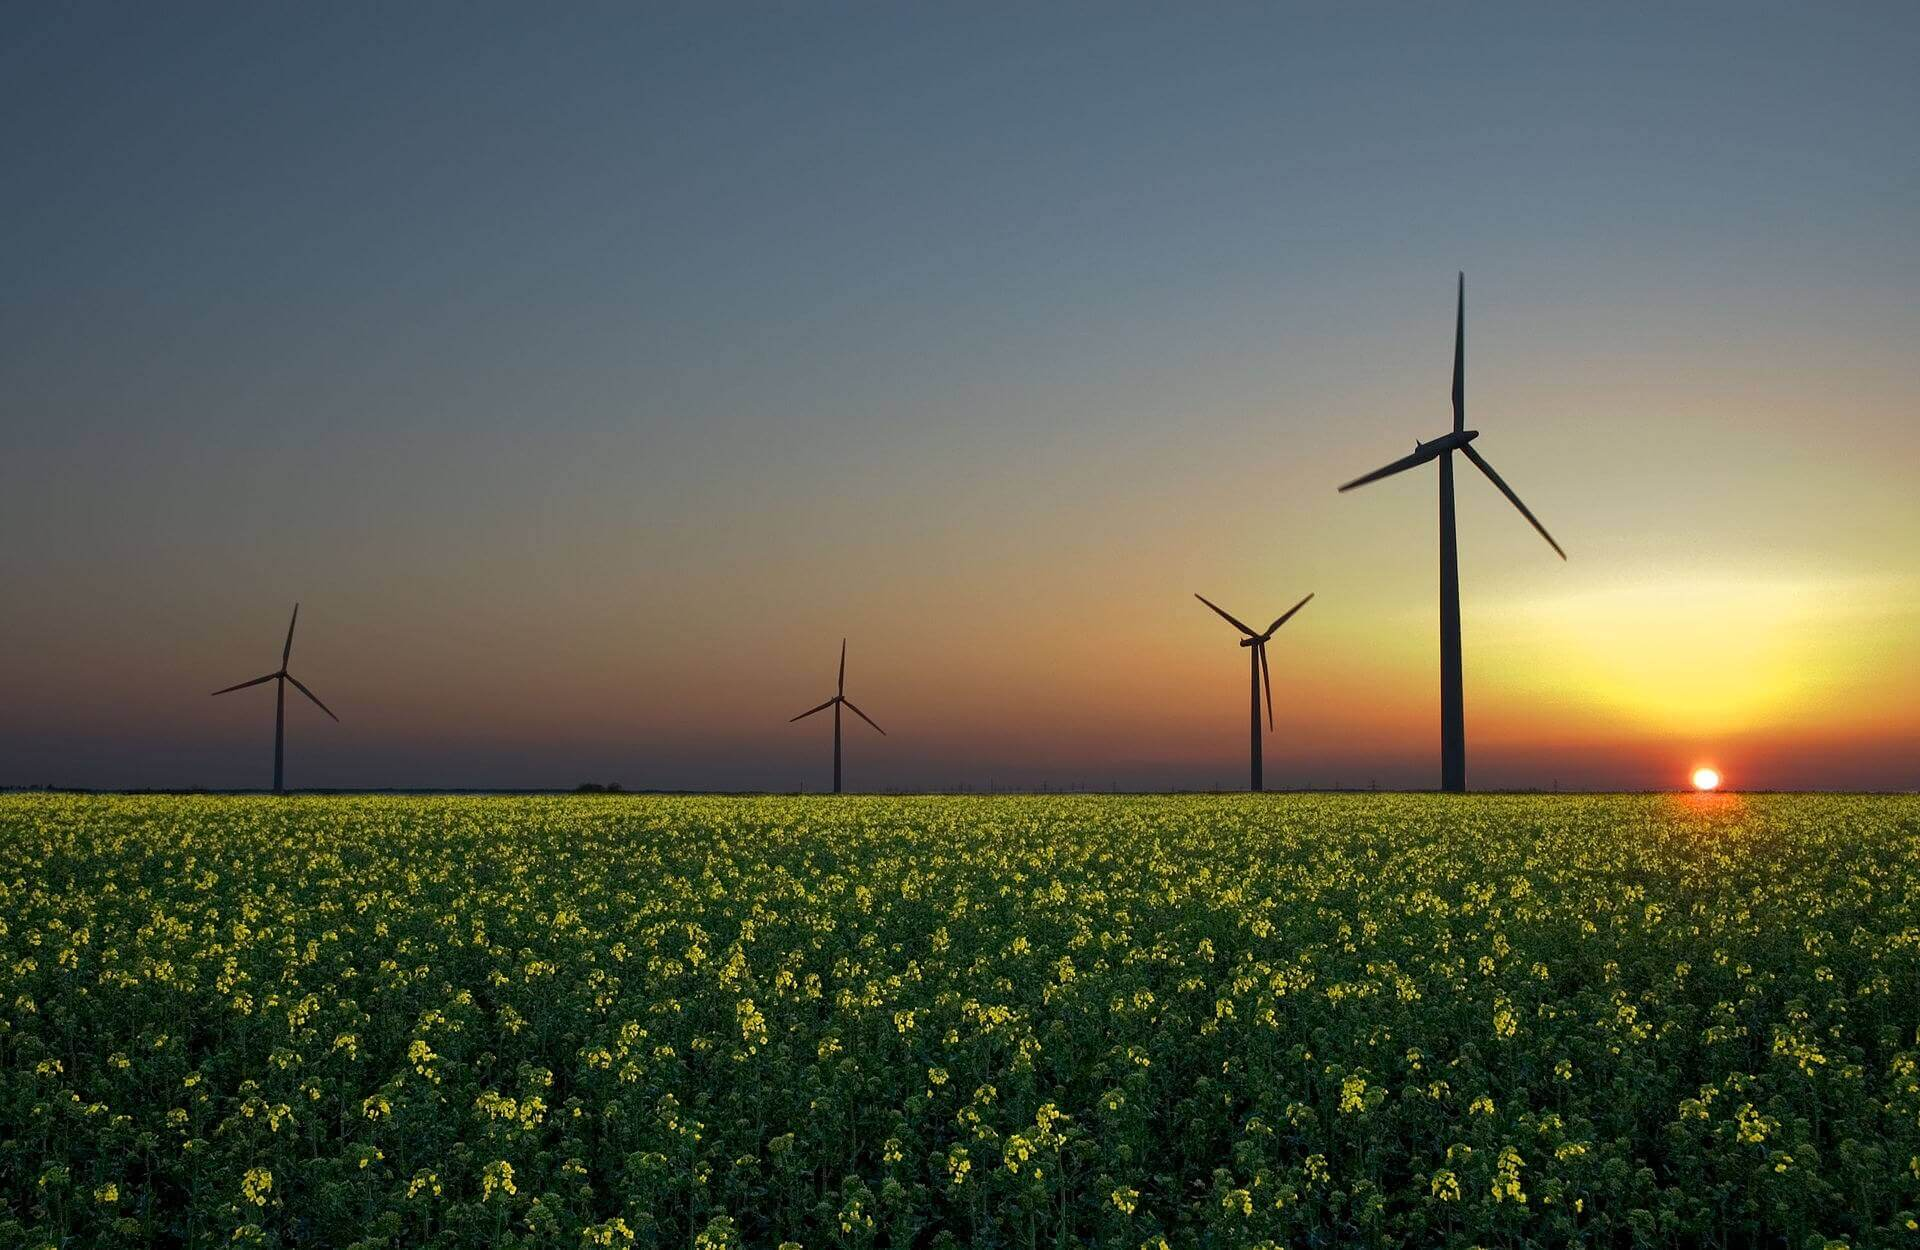 Silhouette of wind turbines seen through a field of yellow flowers with a setting sun in the distance.